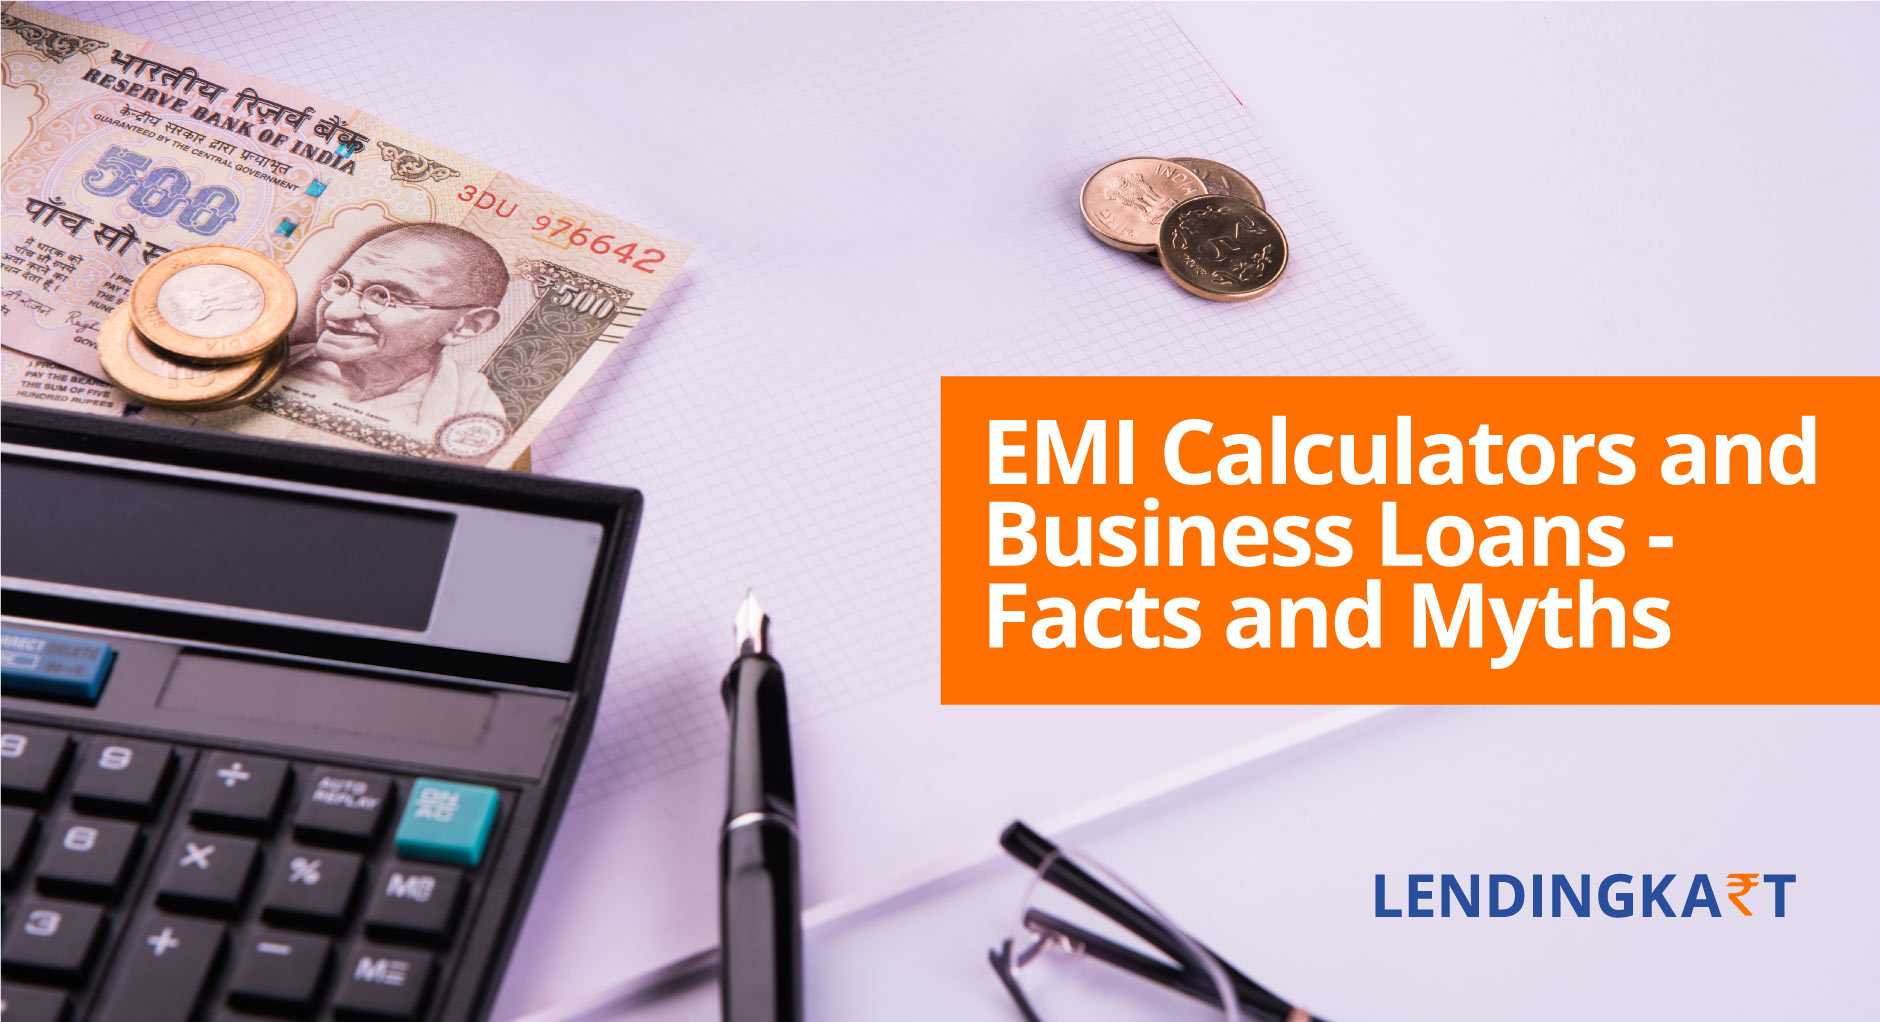 EMI Calculators and Business Loans